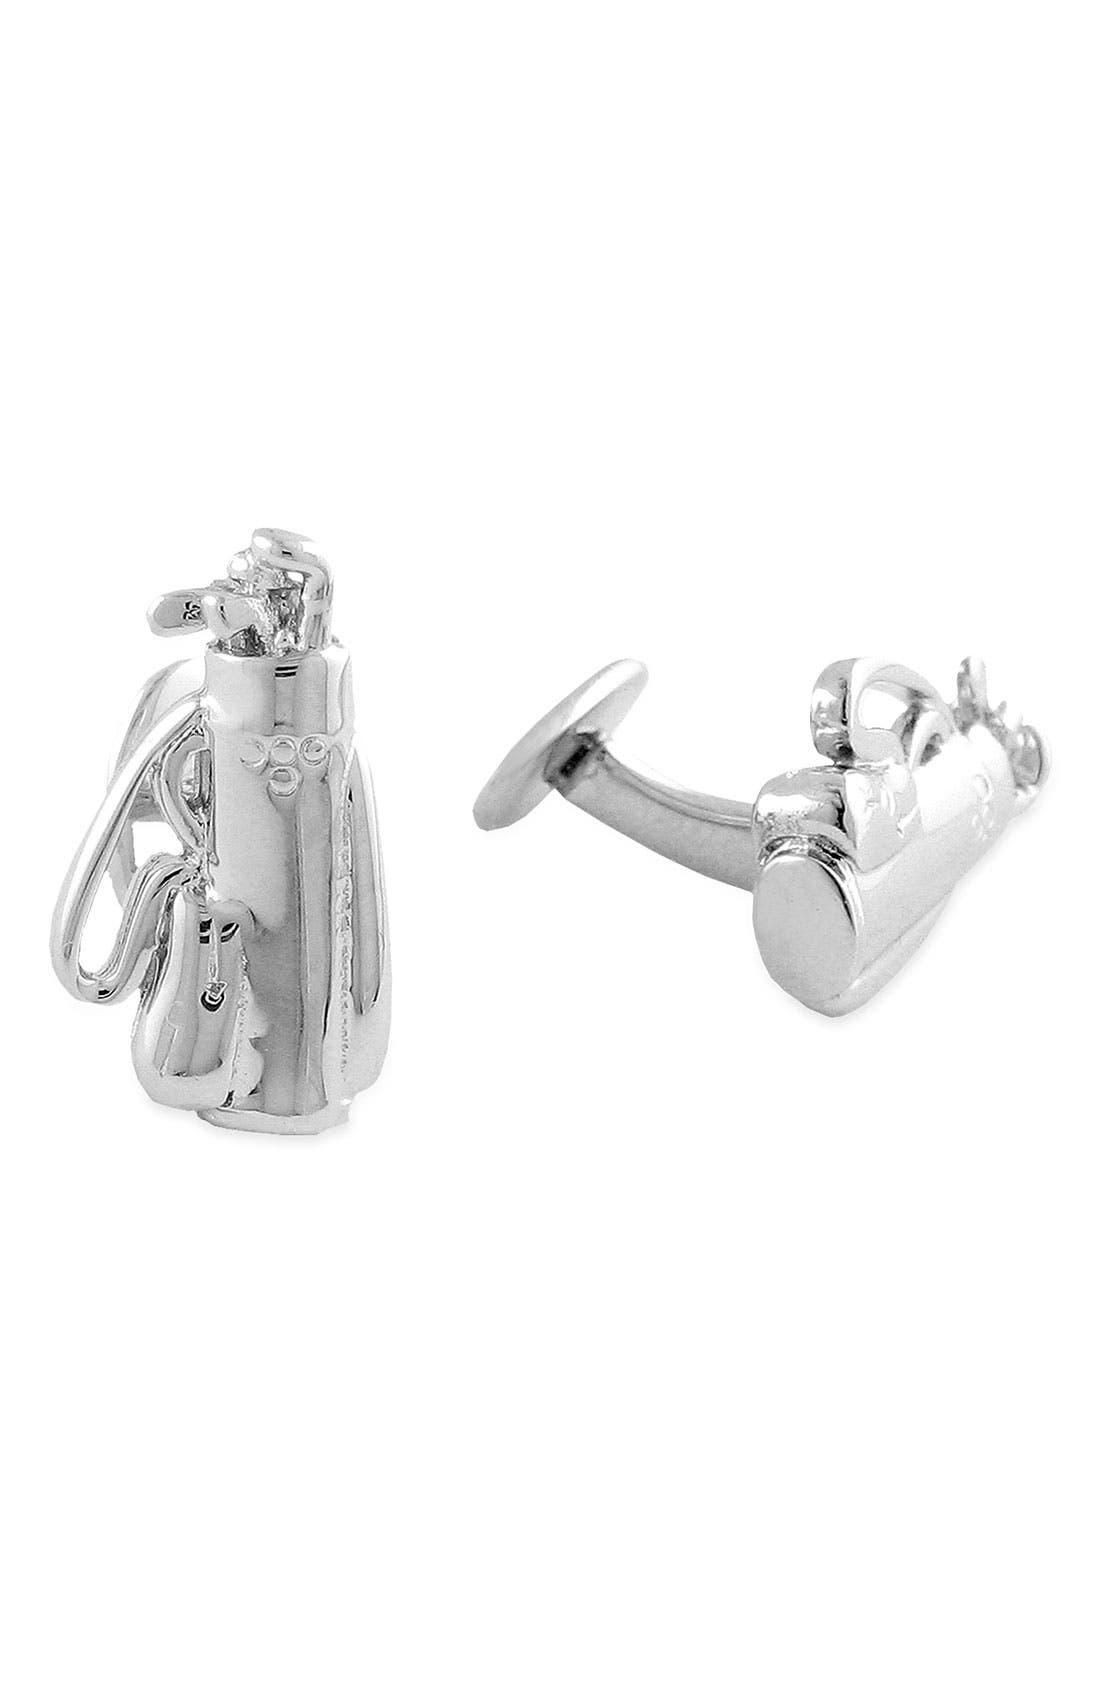 Main Image - David Donahue 'Golf' Sterling Silver Cuff Links